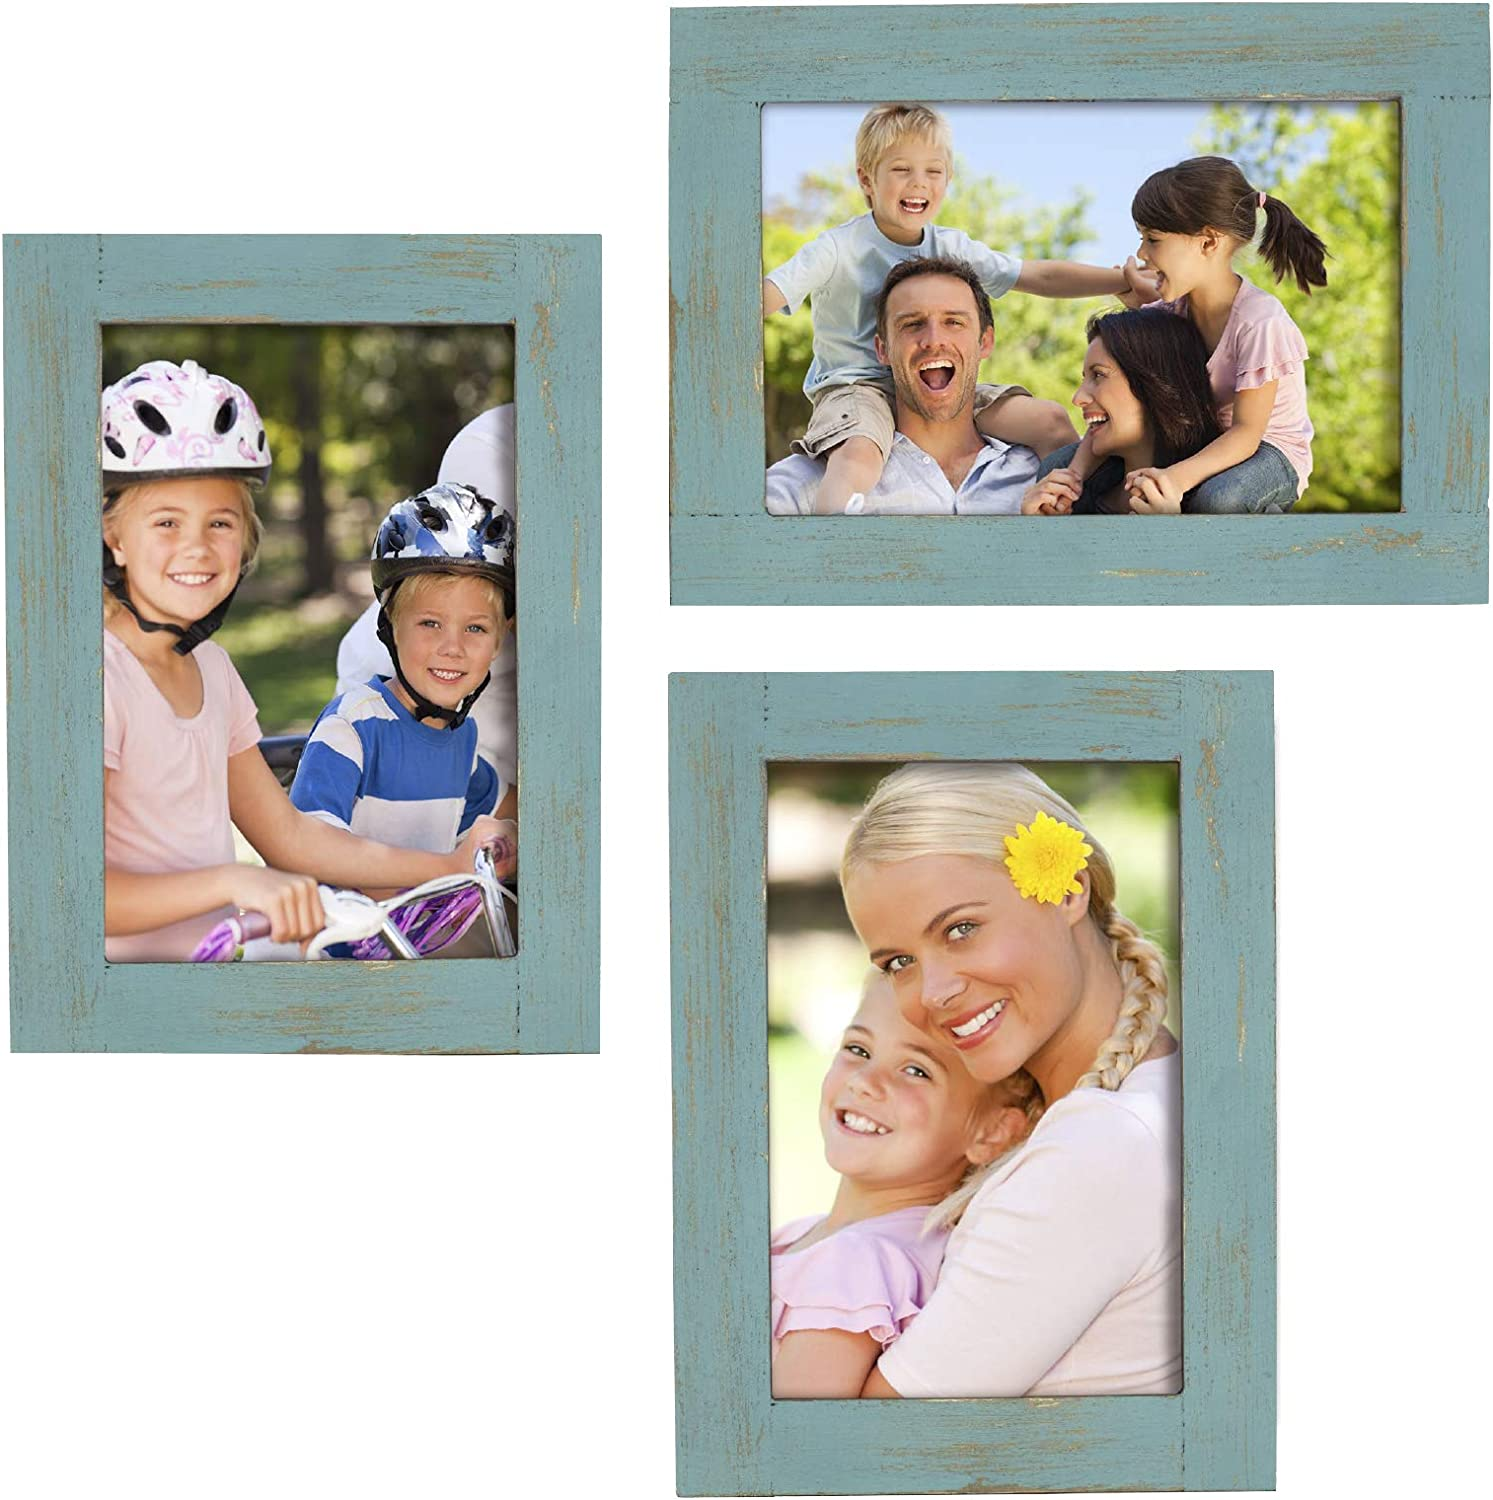 Rustic Torched Wood Picture Frames: Includes three 4